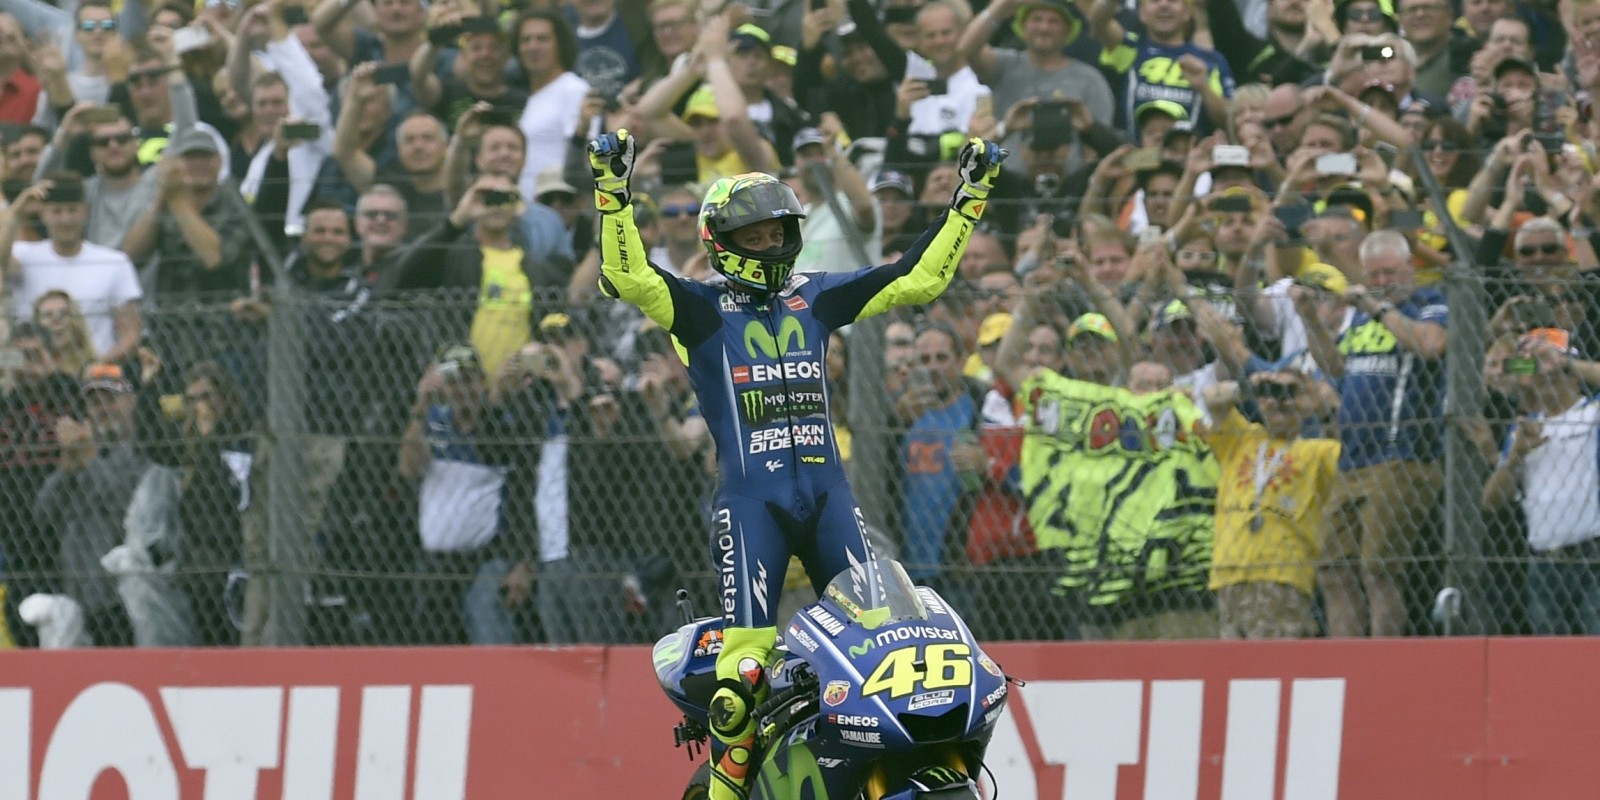 Valentino Rossi at the 2017 Grand Prix of Netherlands